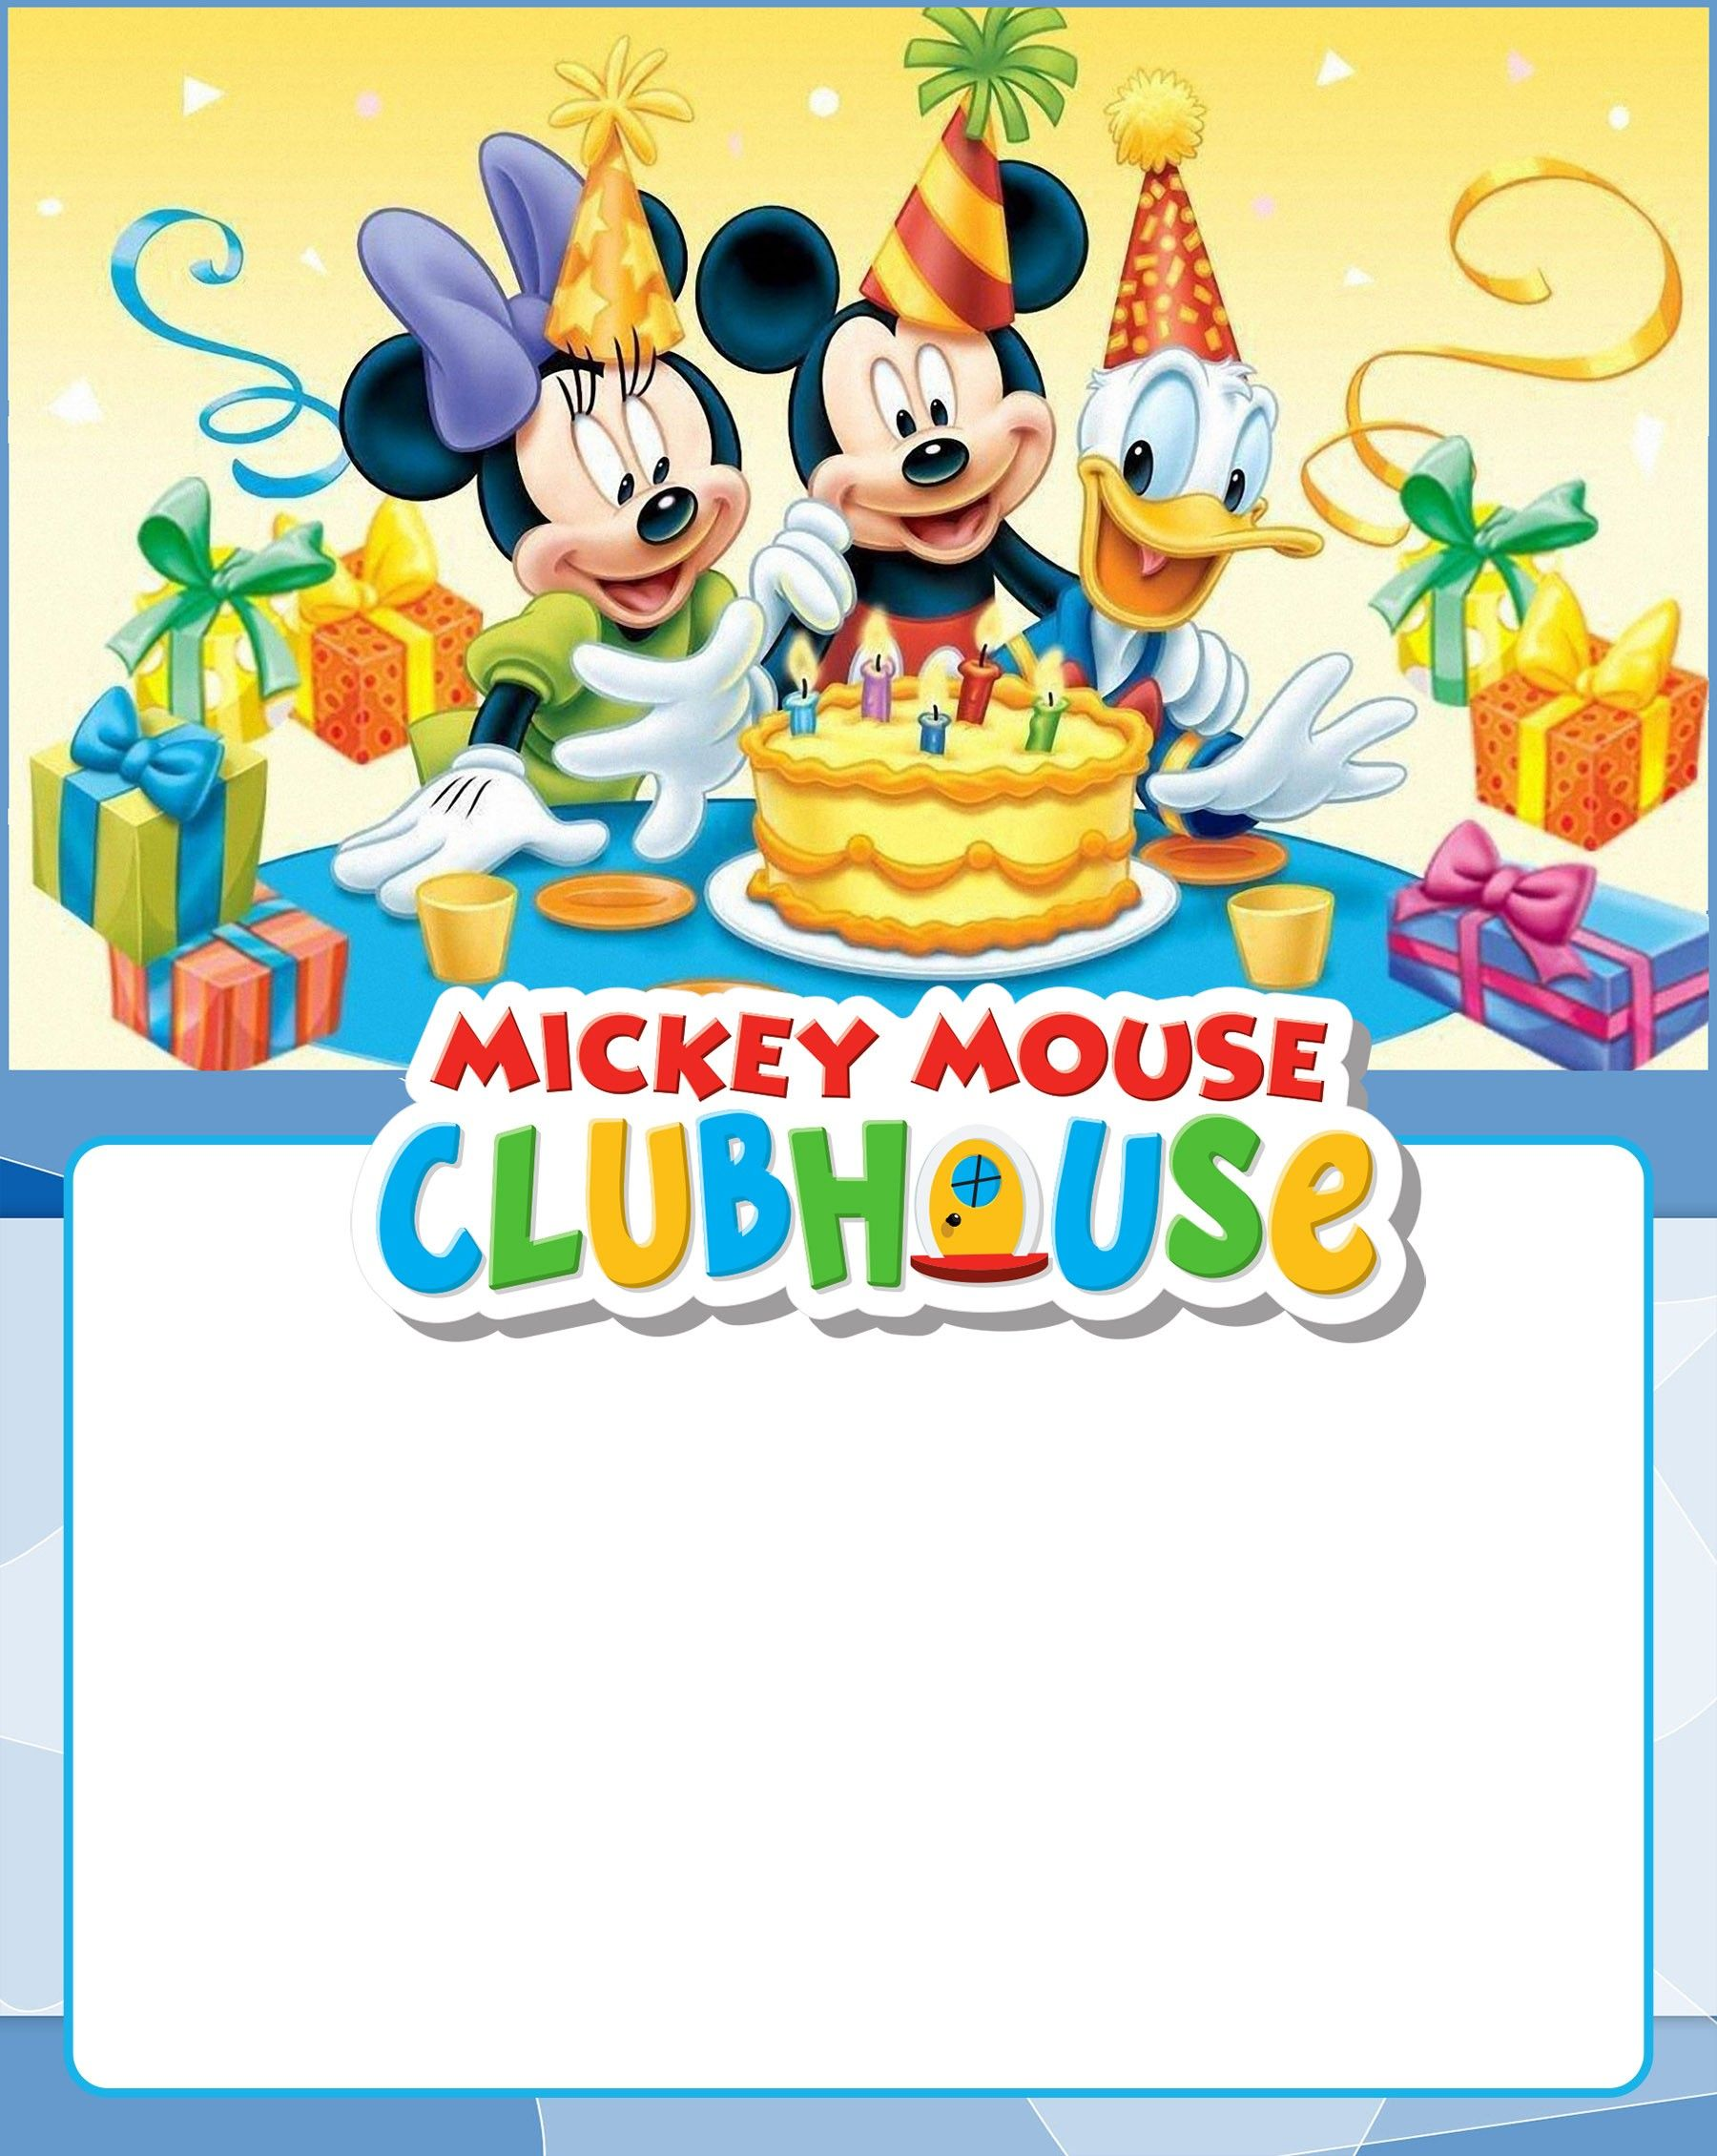 Mickey mouse clubhouse birthday clipart svg free stock Free Printable Mickey Mouse Clubhouse Invitation | Coolest ... svg free stock